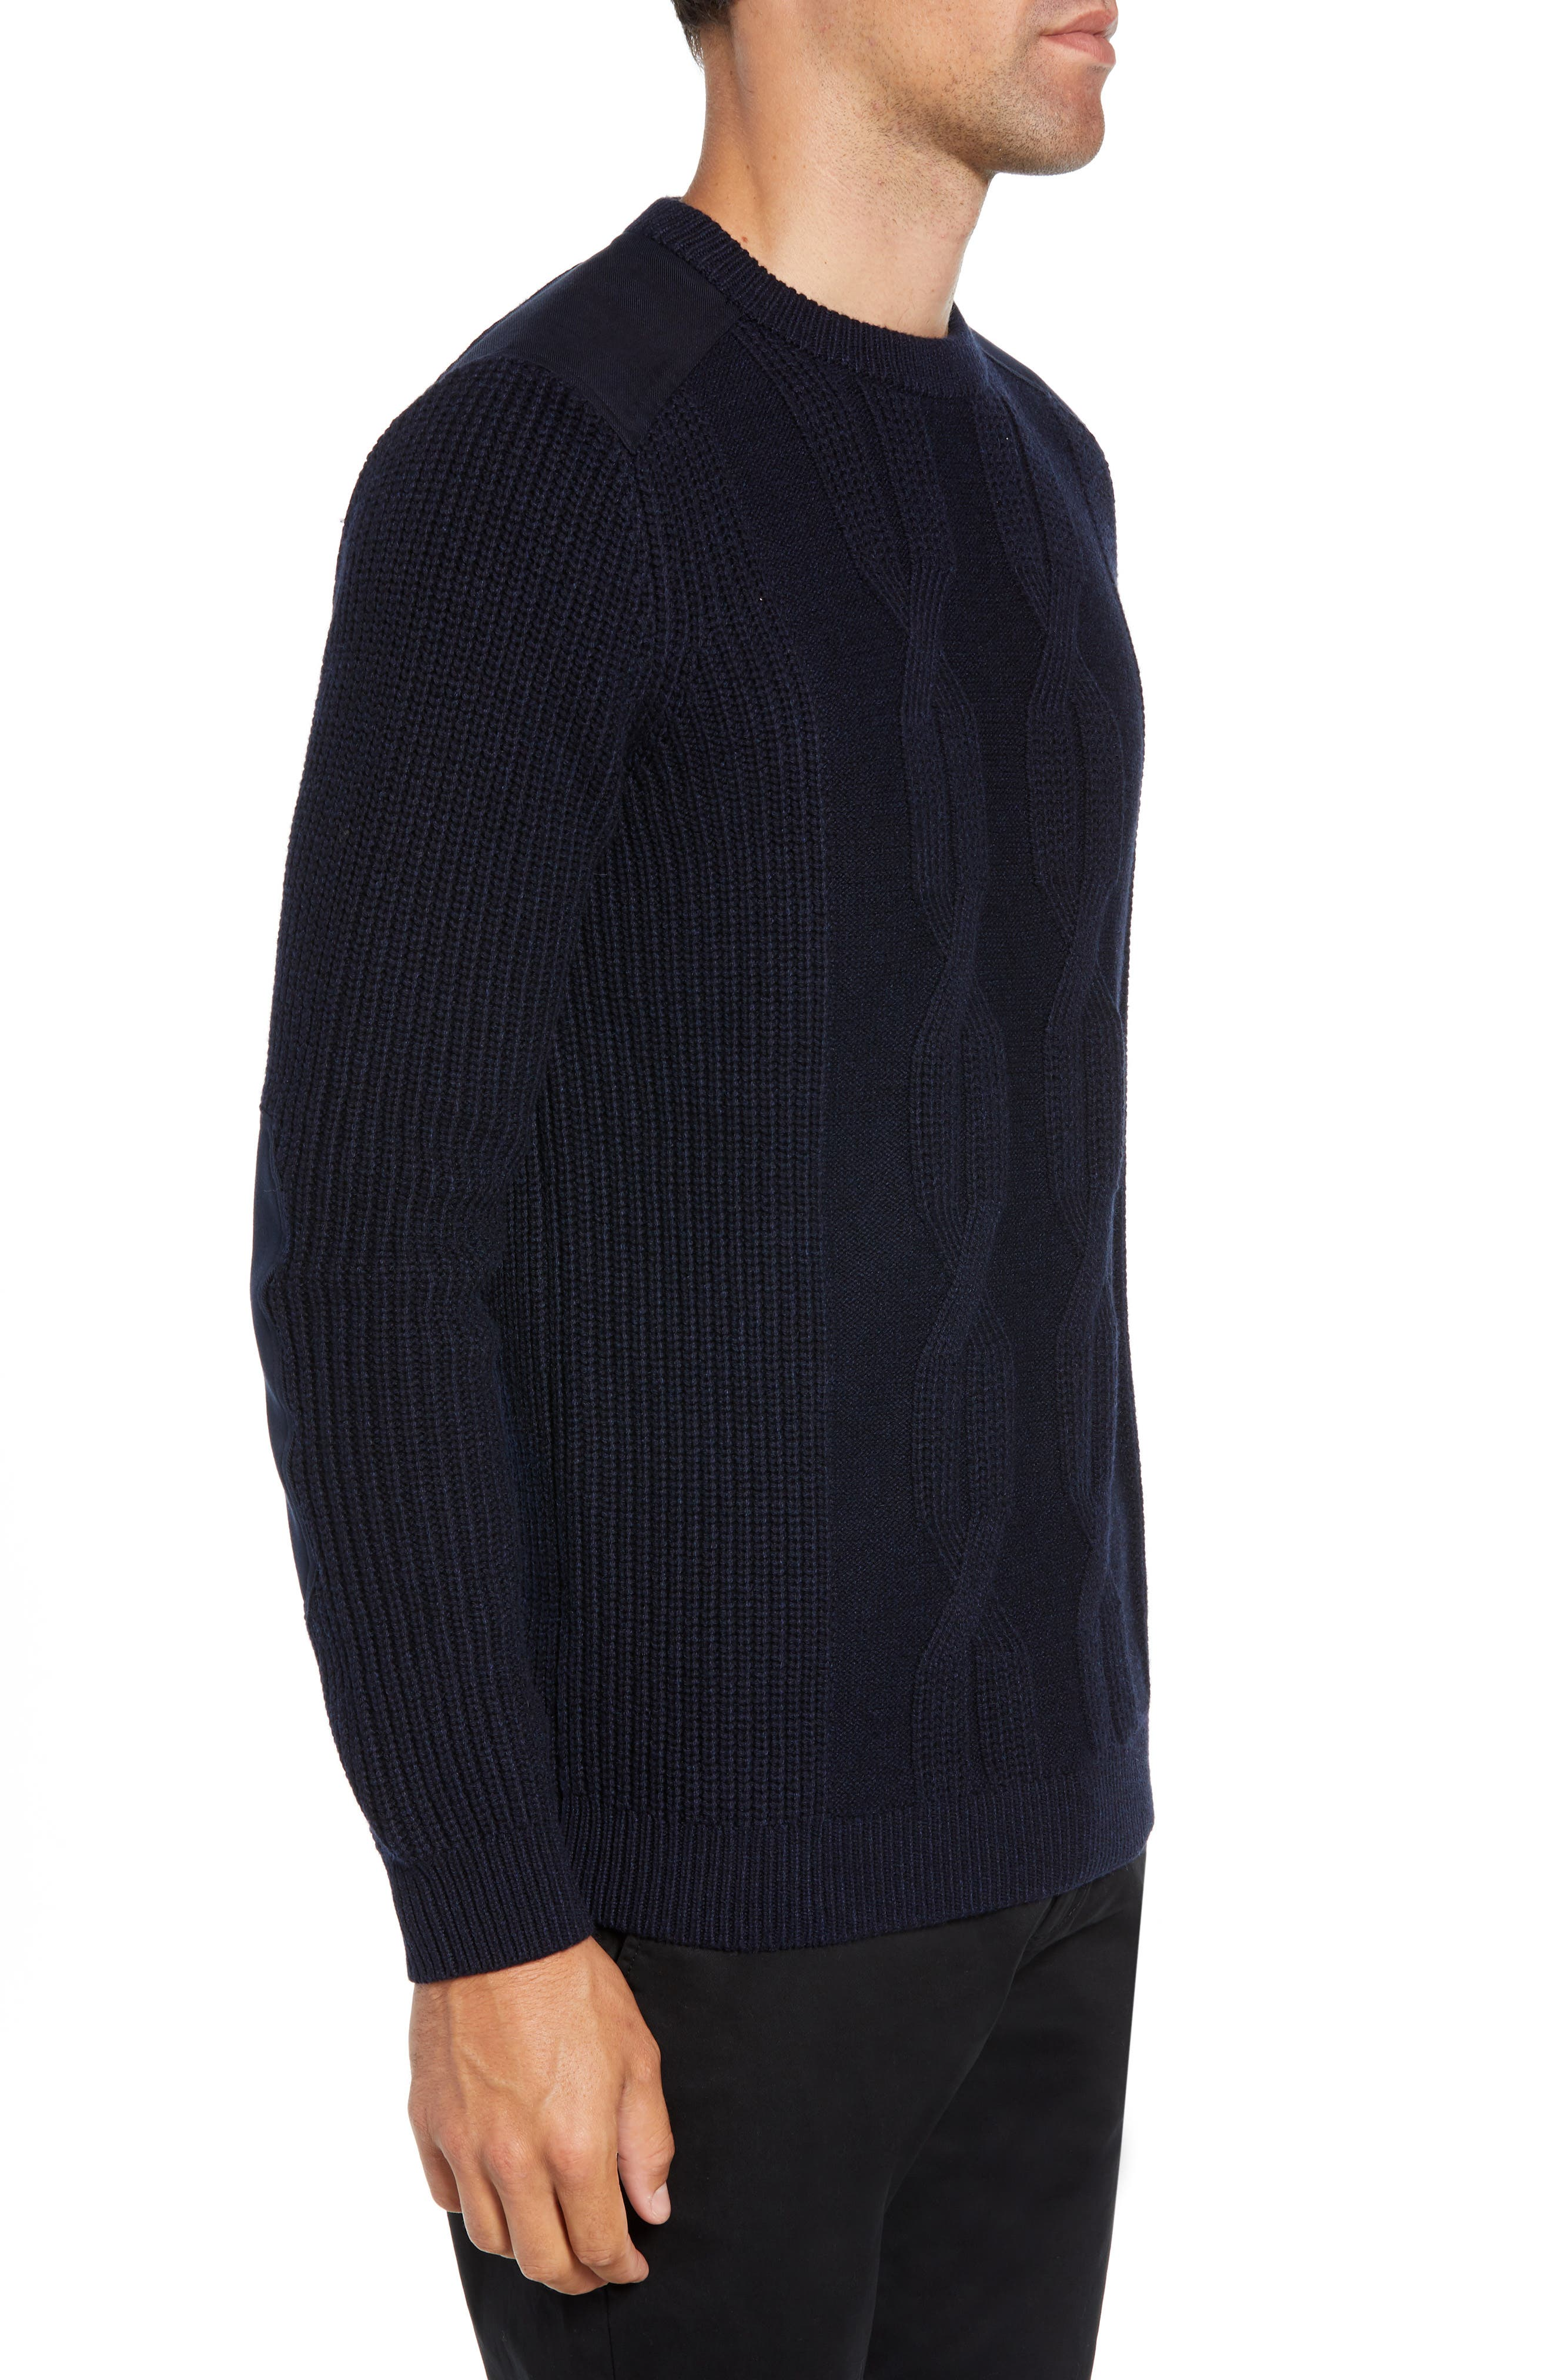 Laichi Trim Fit Cable Crewneck Sweater,                             Alternate thumbnail 3, color,                             NAVY